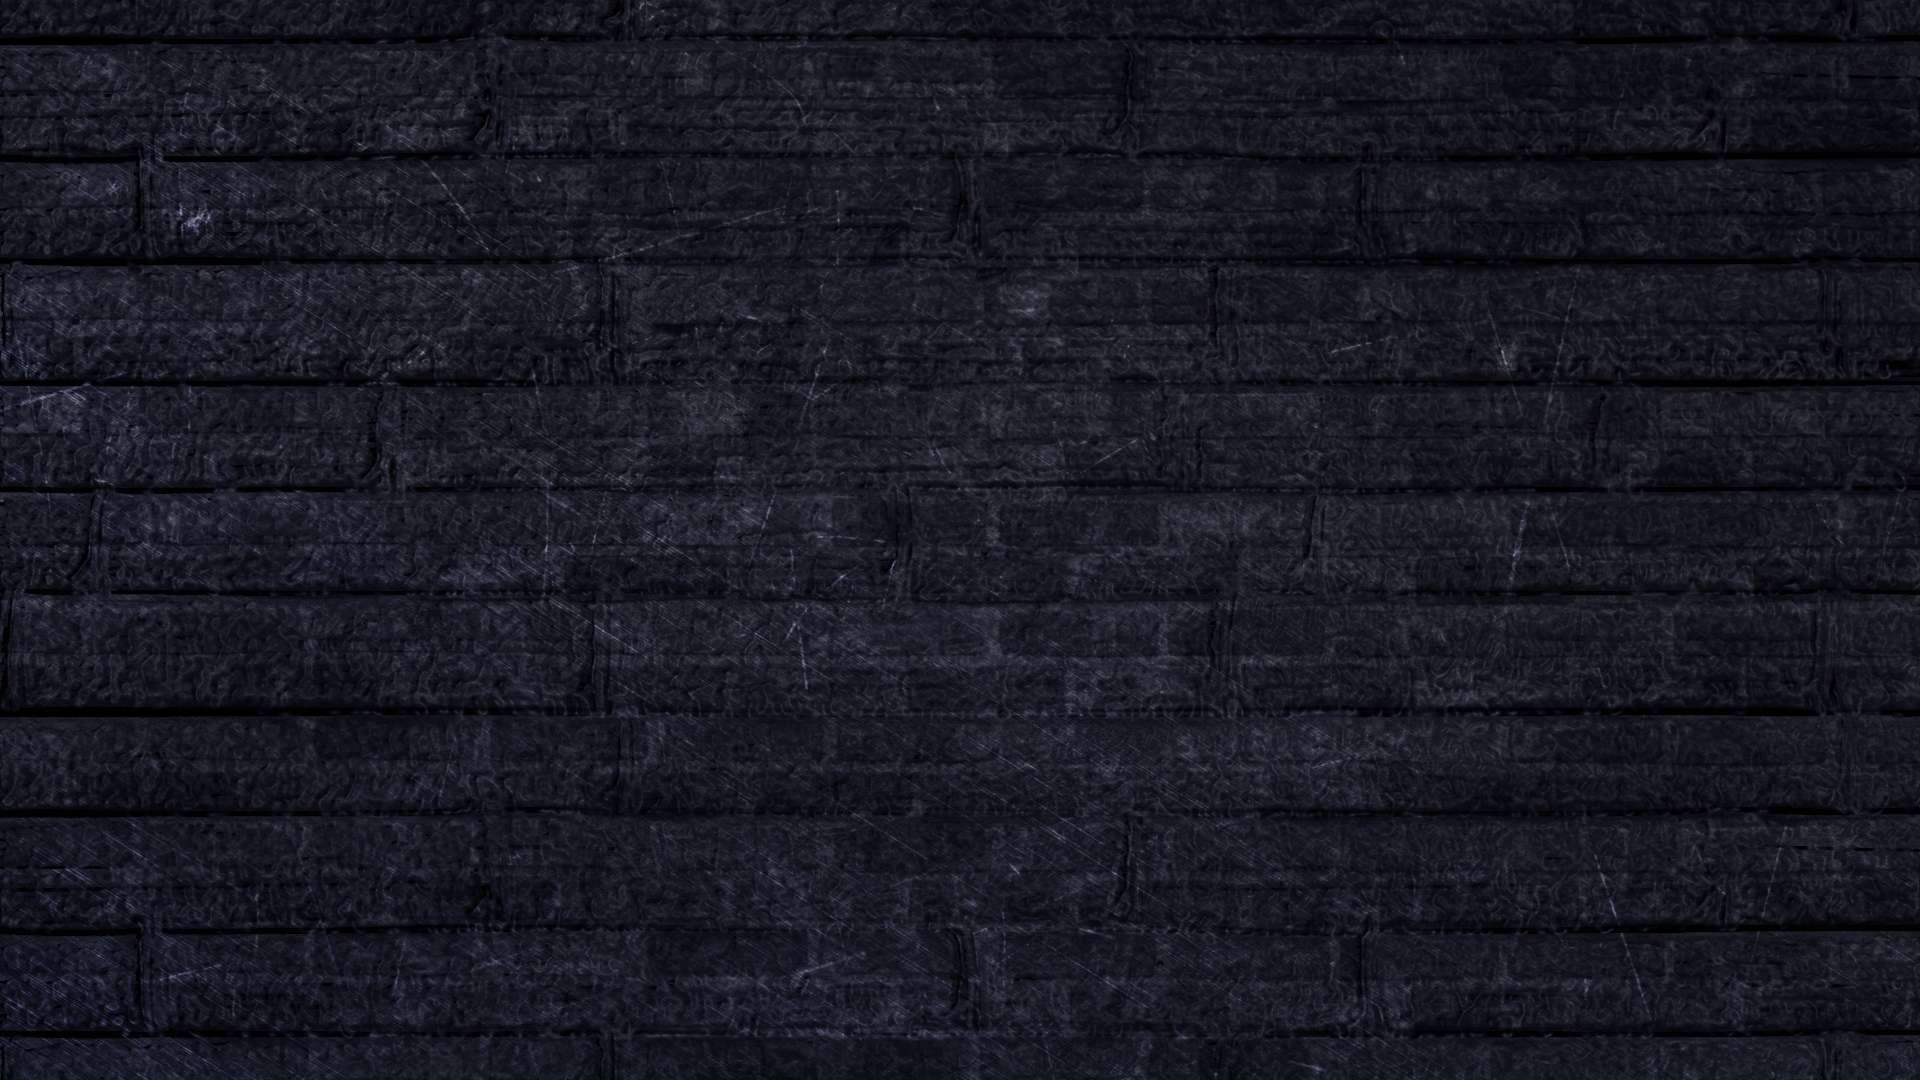 Texture Stripes Black Background Hd Wallpaper 1080p HDWallWidecom 1920x1080